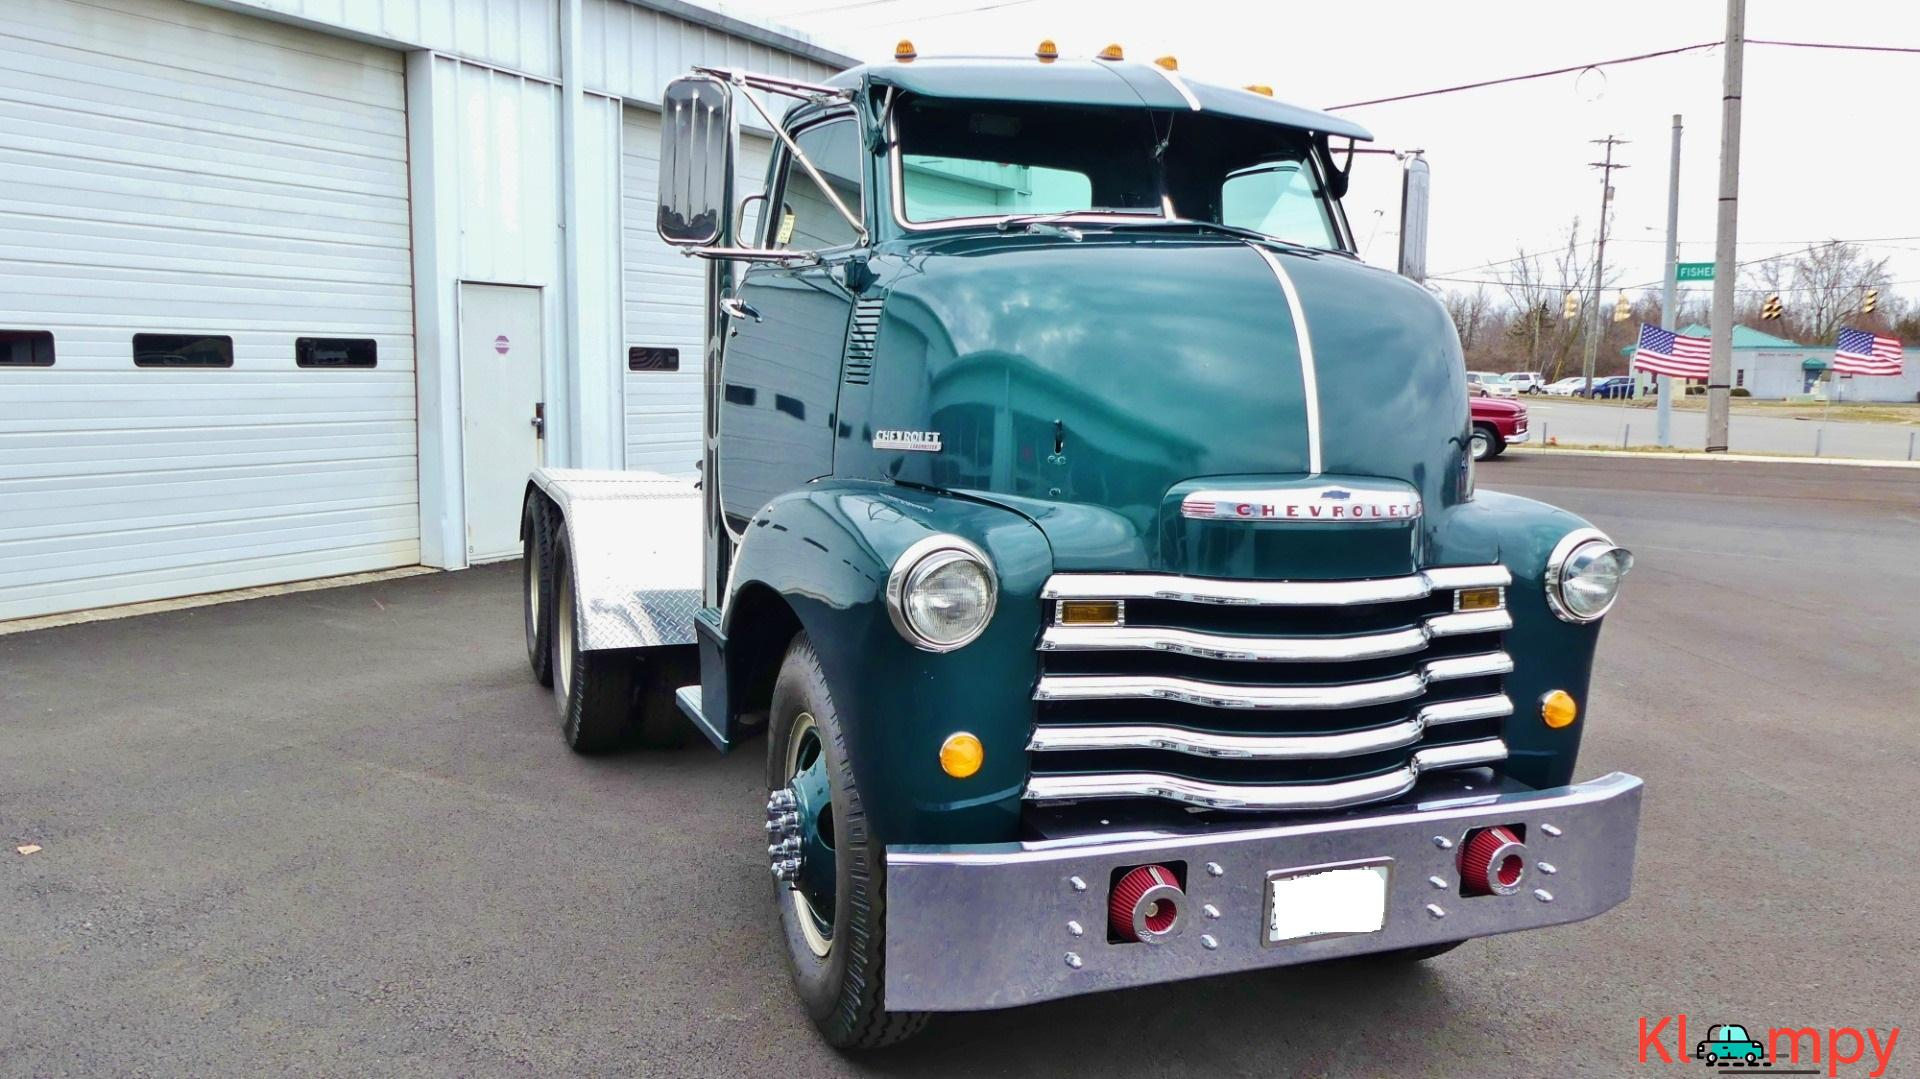 1948 Chevrolet Other Pickups 350 Automatic - 4/22